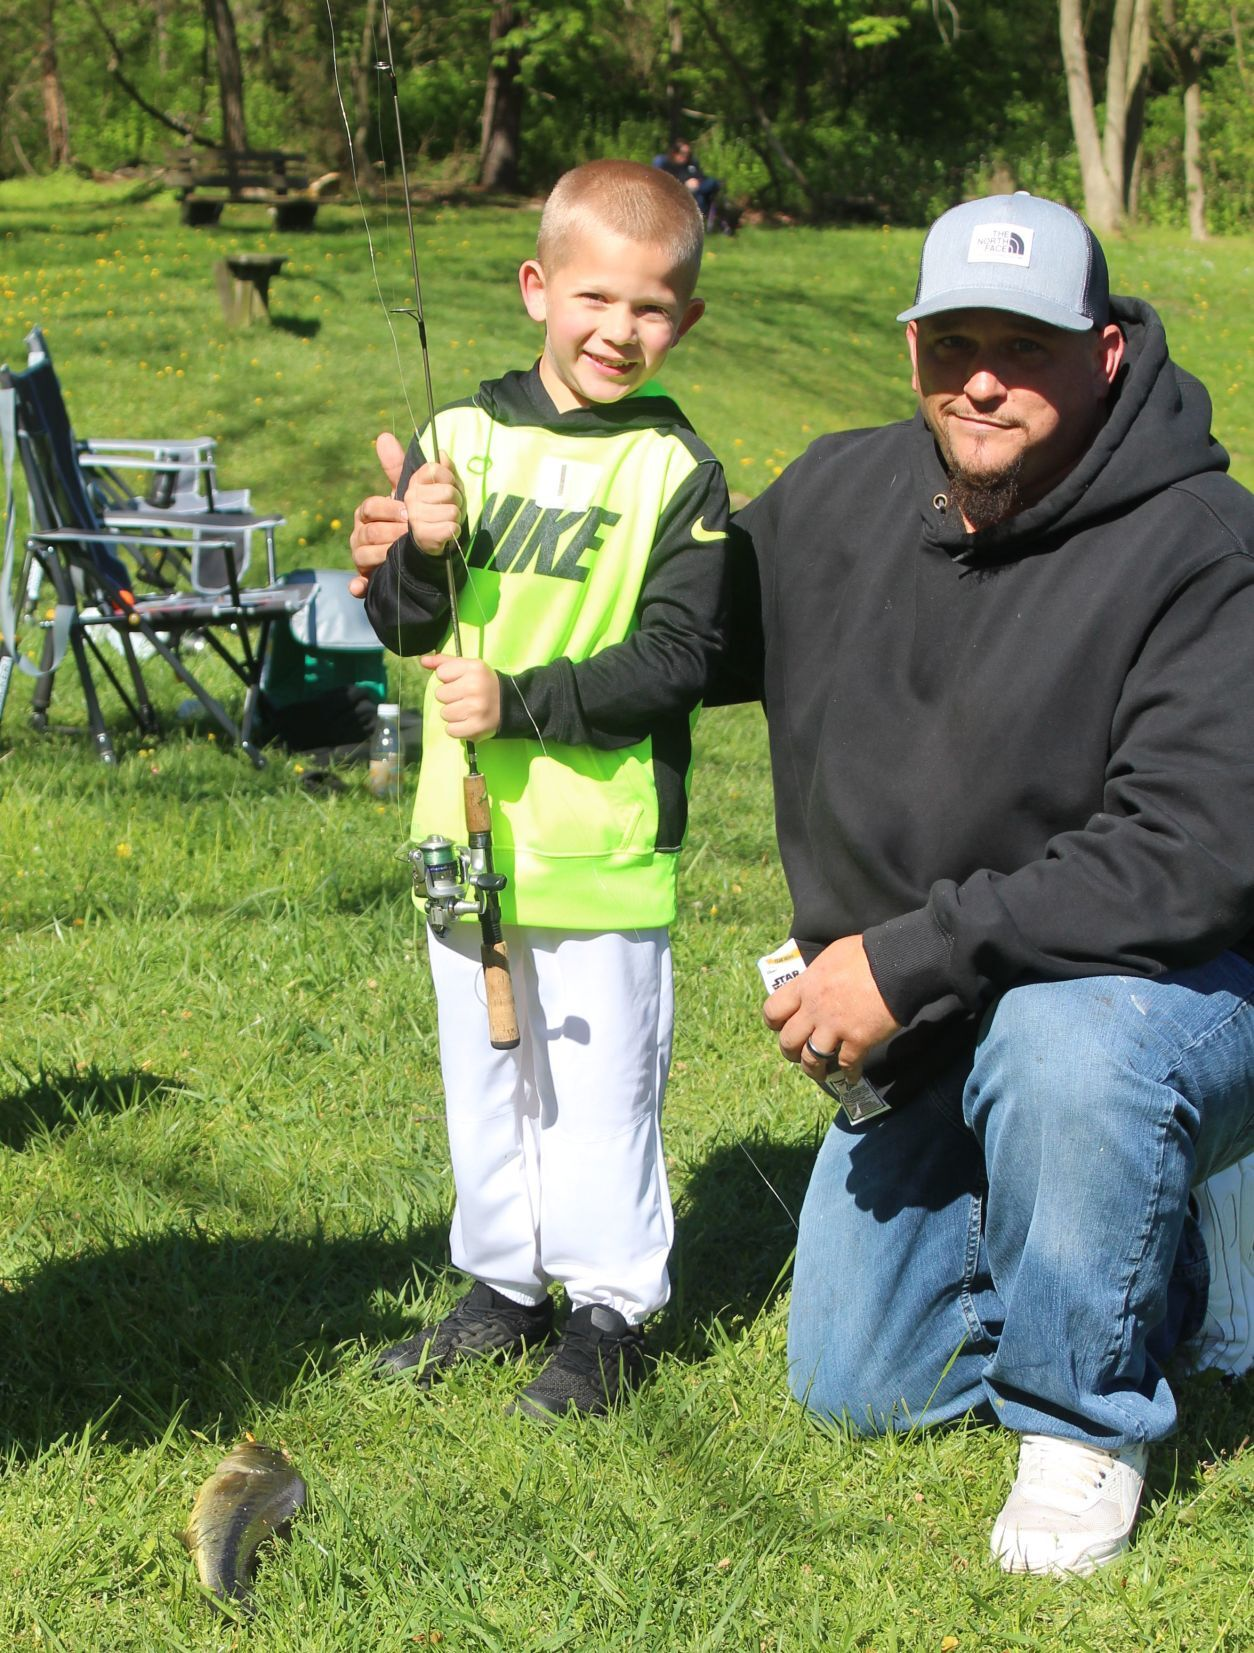 Rising Sun Chamber hosted its Fishing Derby